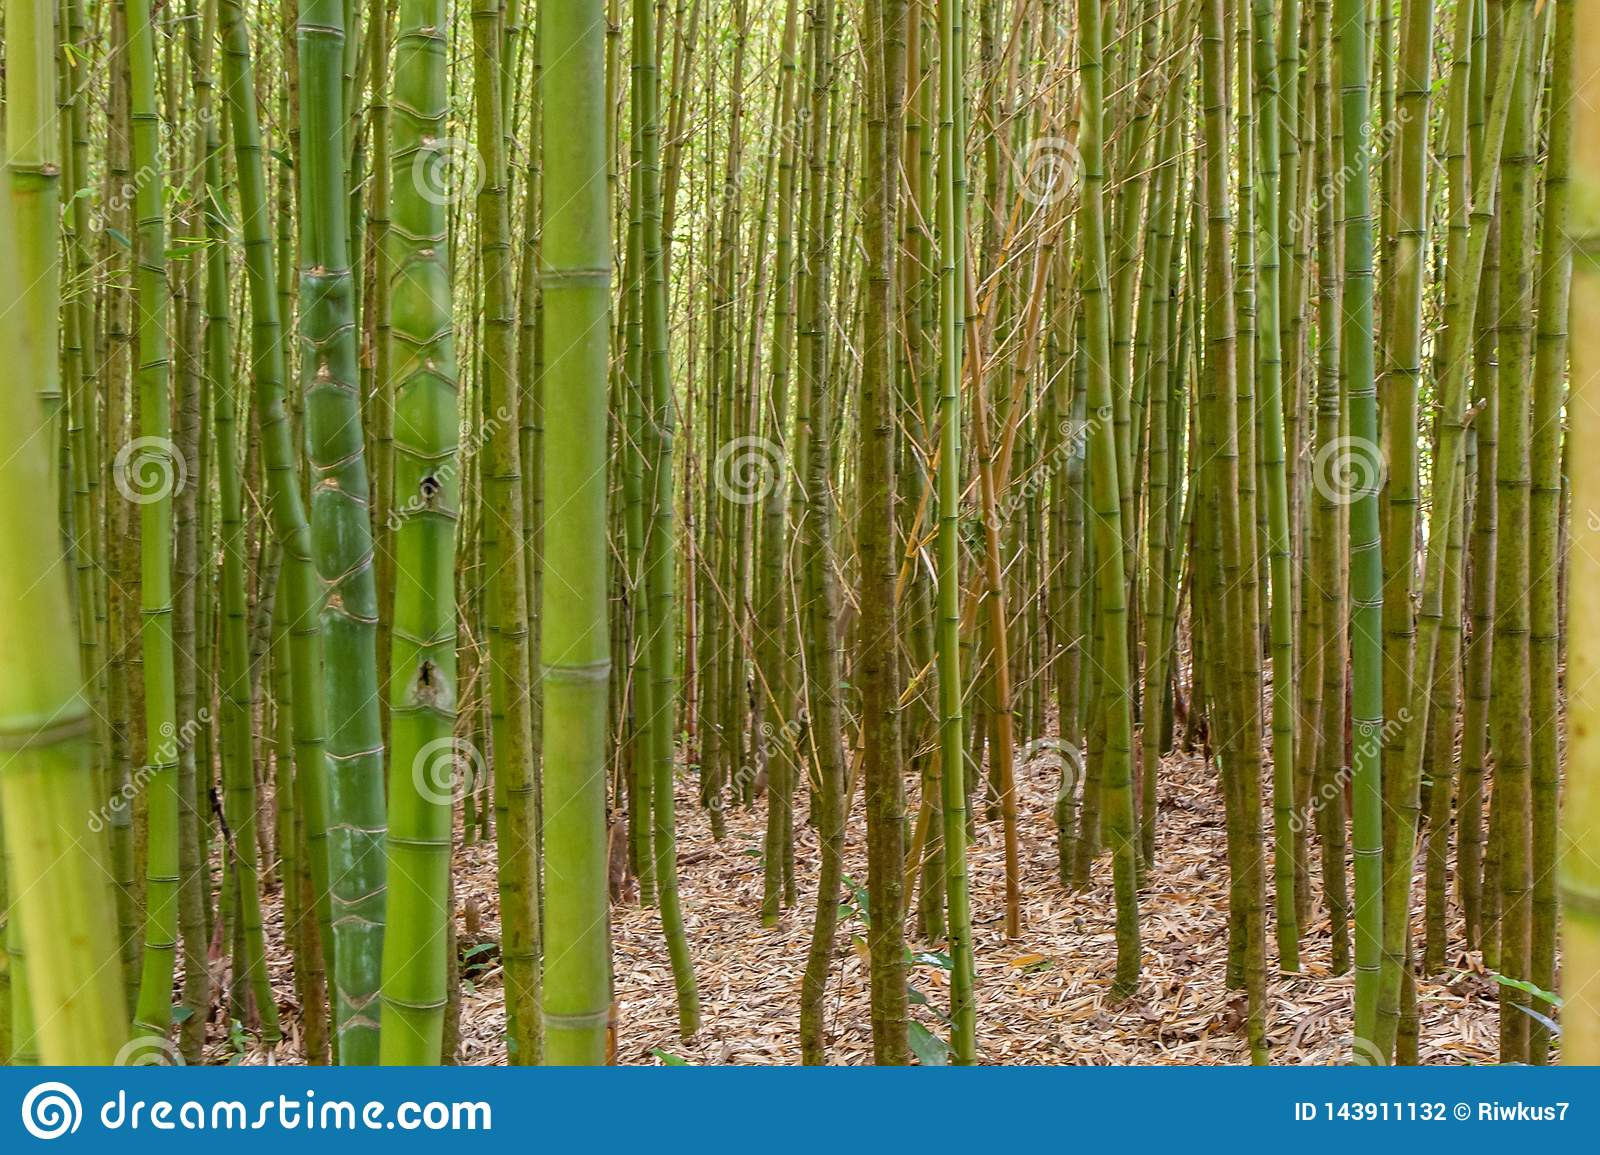 Thick bamboo thickets close up